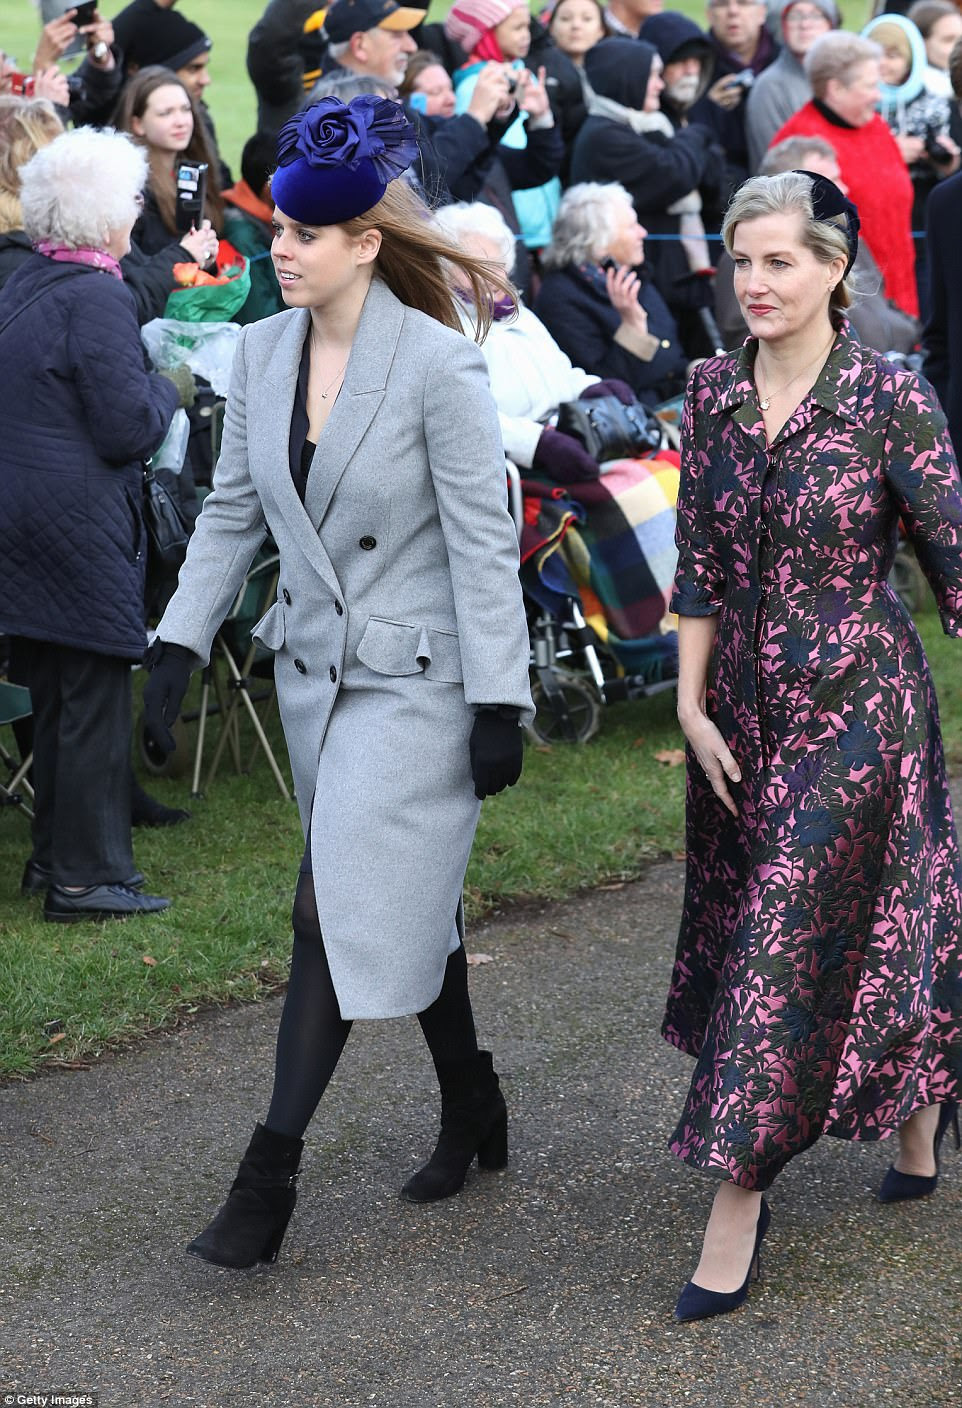 Princess Beatrice and Sophie, Countess of Wessex, were also at the special Christmas Day service this morning